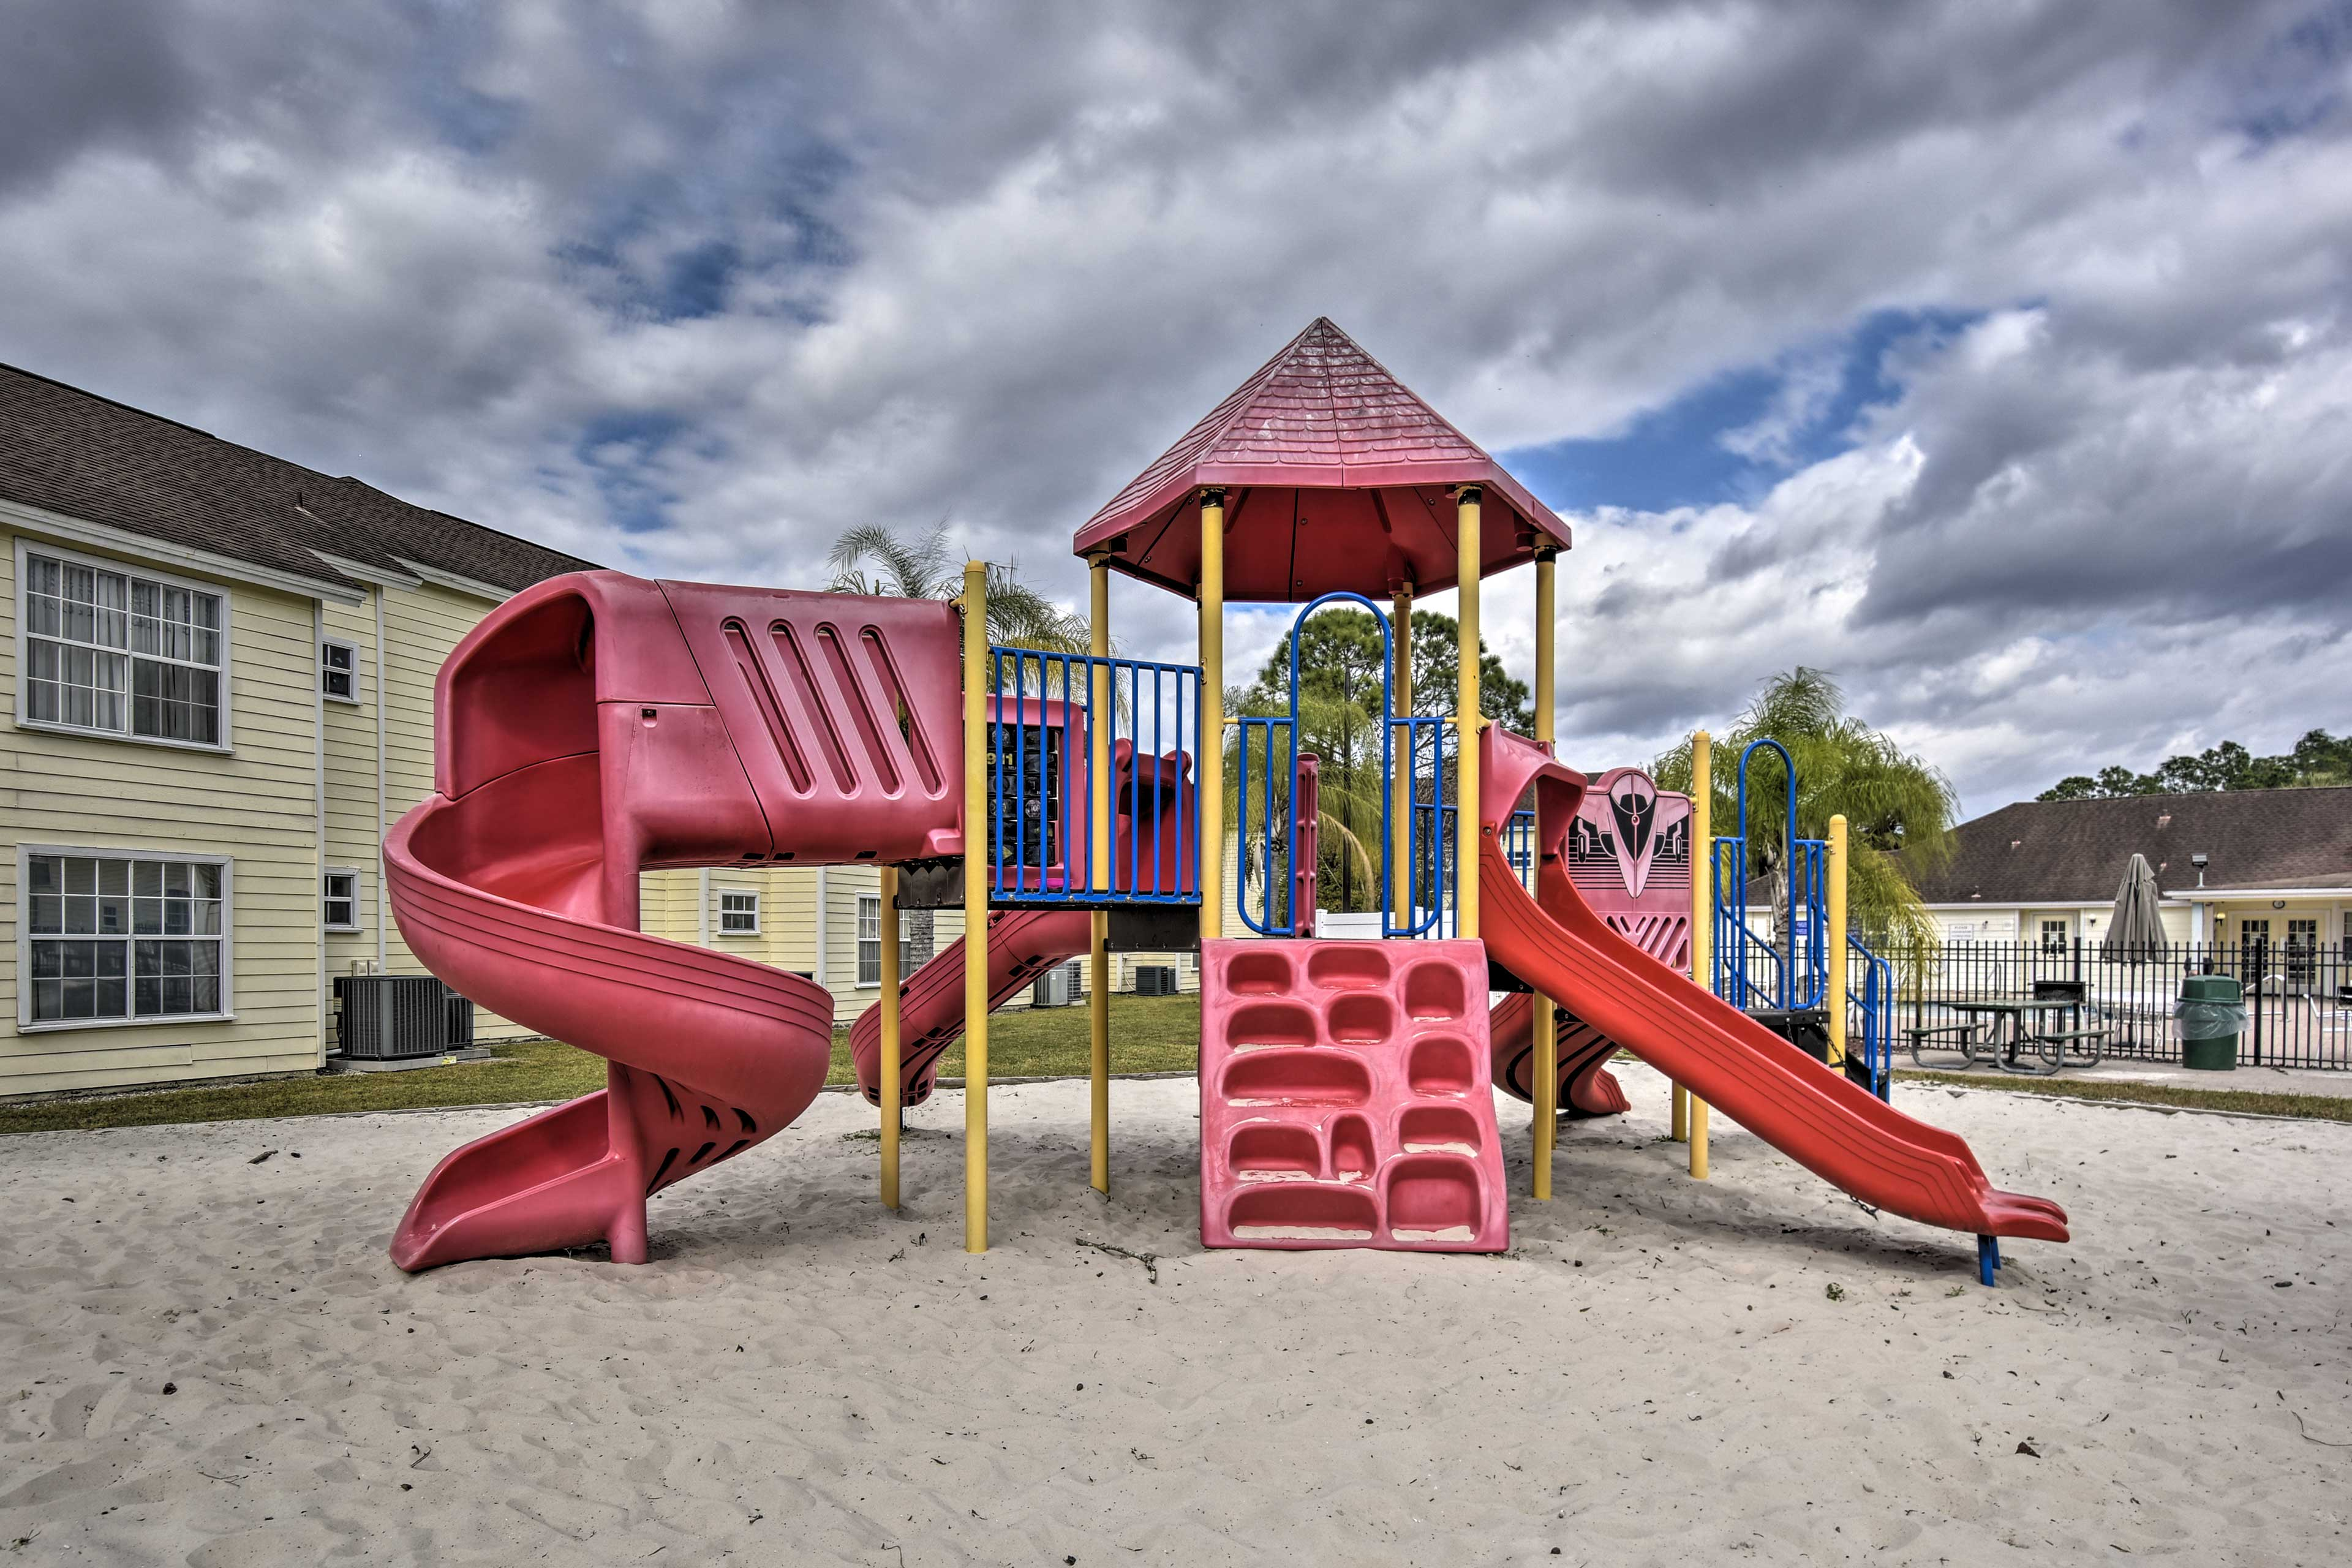 Take the kids to the playground to burn off that last bit of energy.